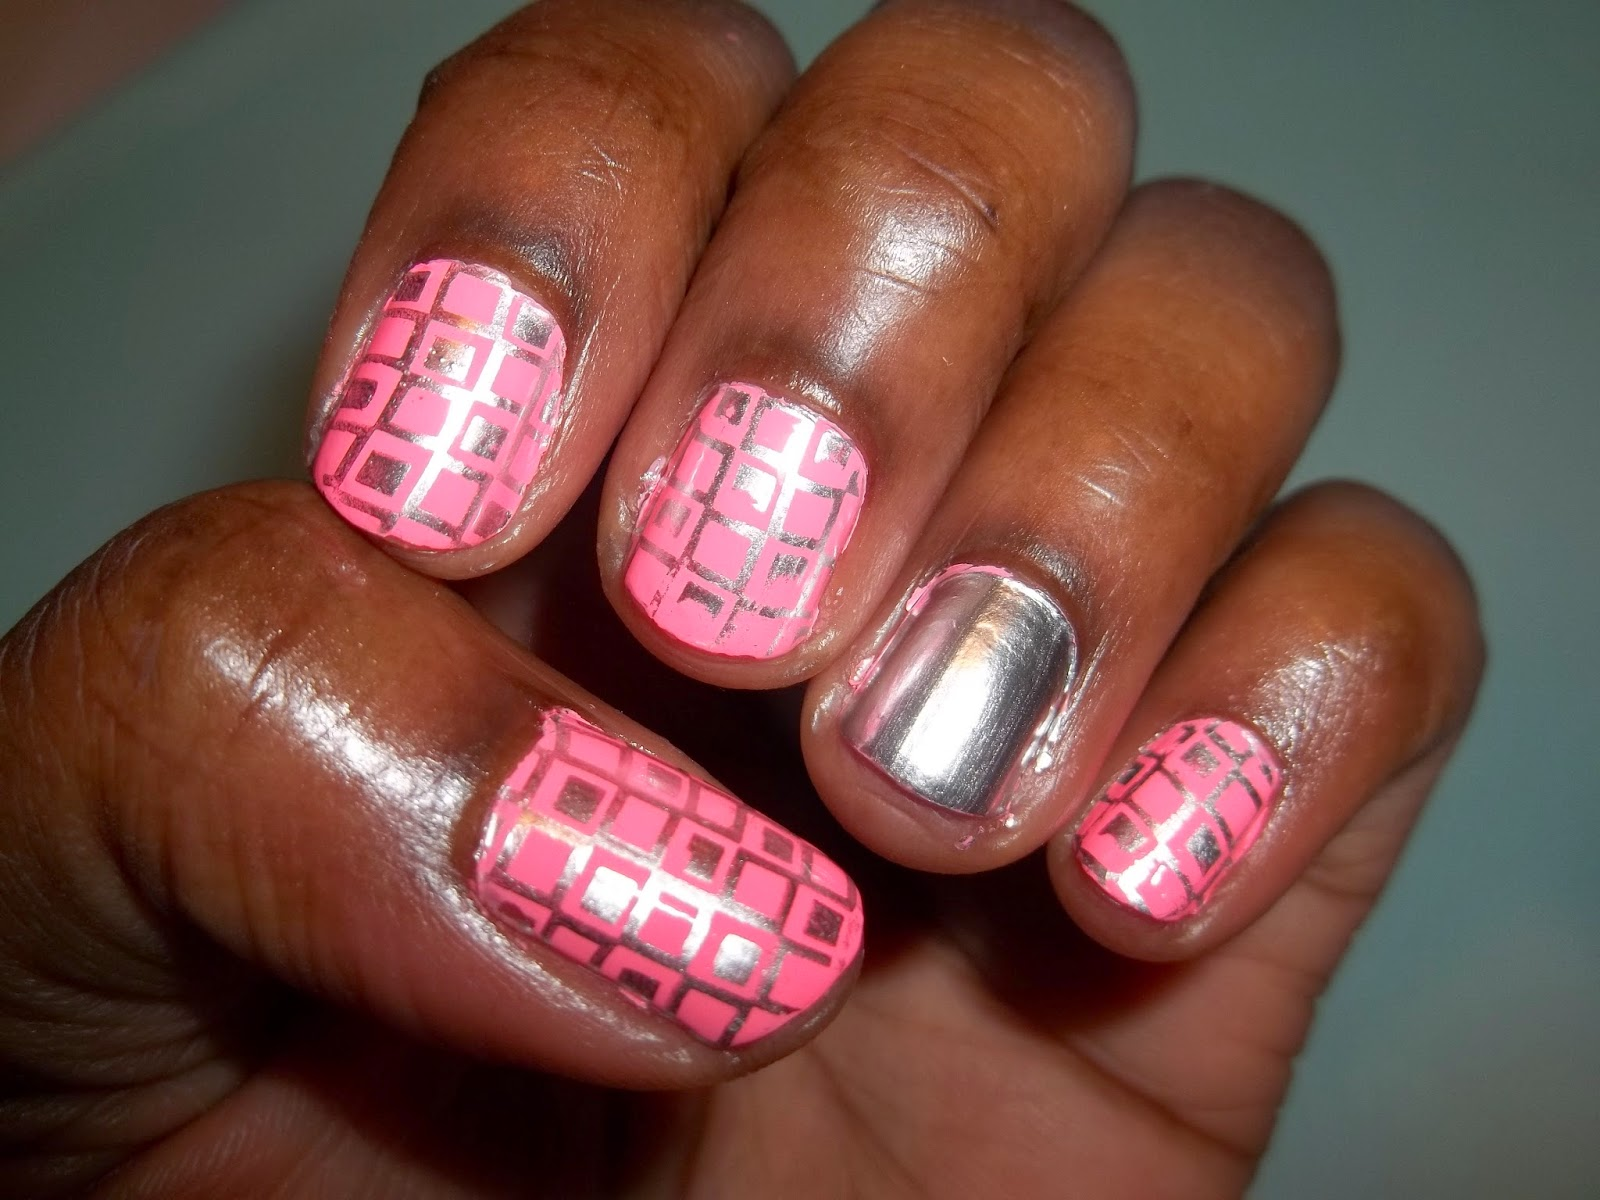 Sally Hansen Color Foil Nail Stamping Demo Manicure using OPI 'Shocking Pink' stamped with 'Sterling Silver', and a 'Sterling Silver' accent nail